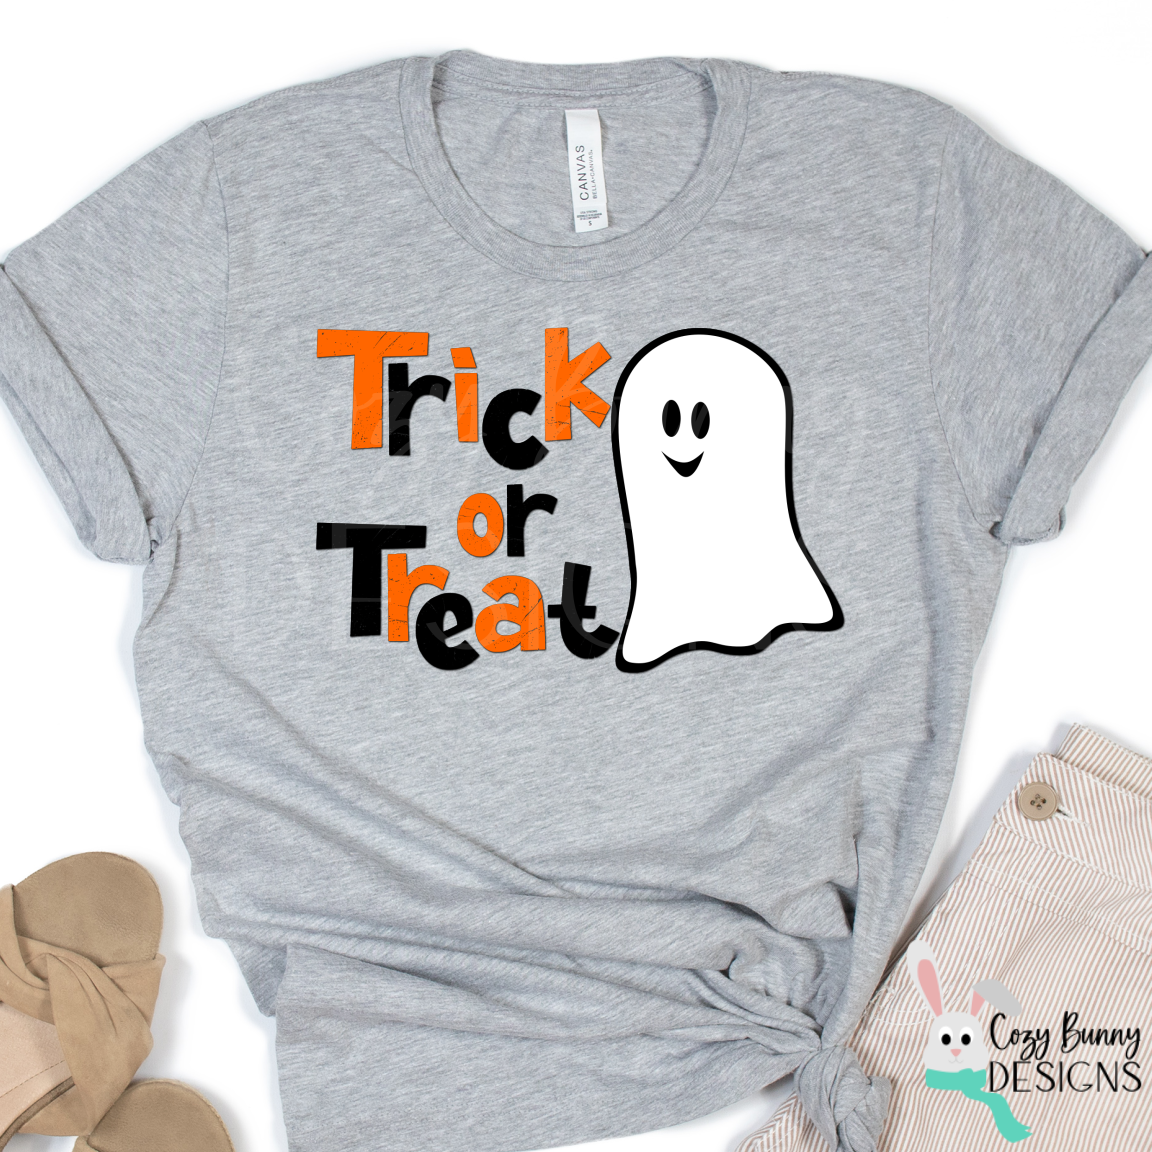 Read more about the article Trick or Treat! Free Halloween SVG